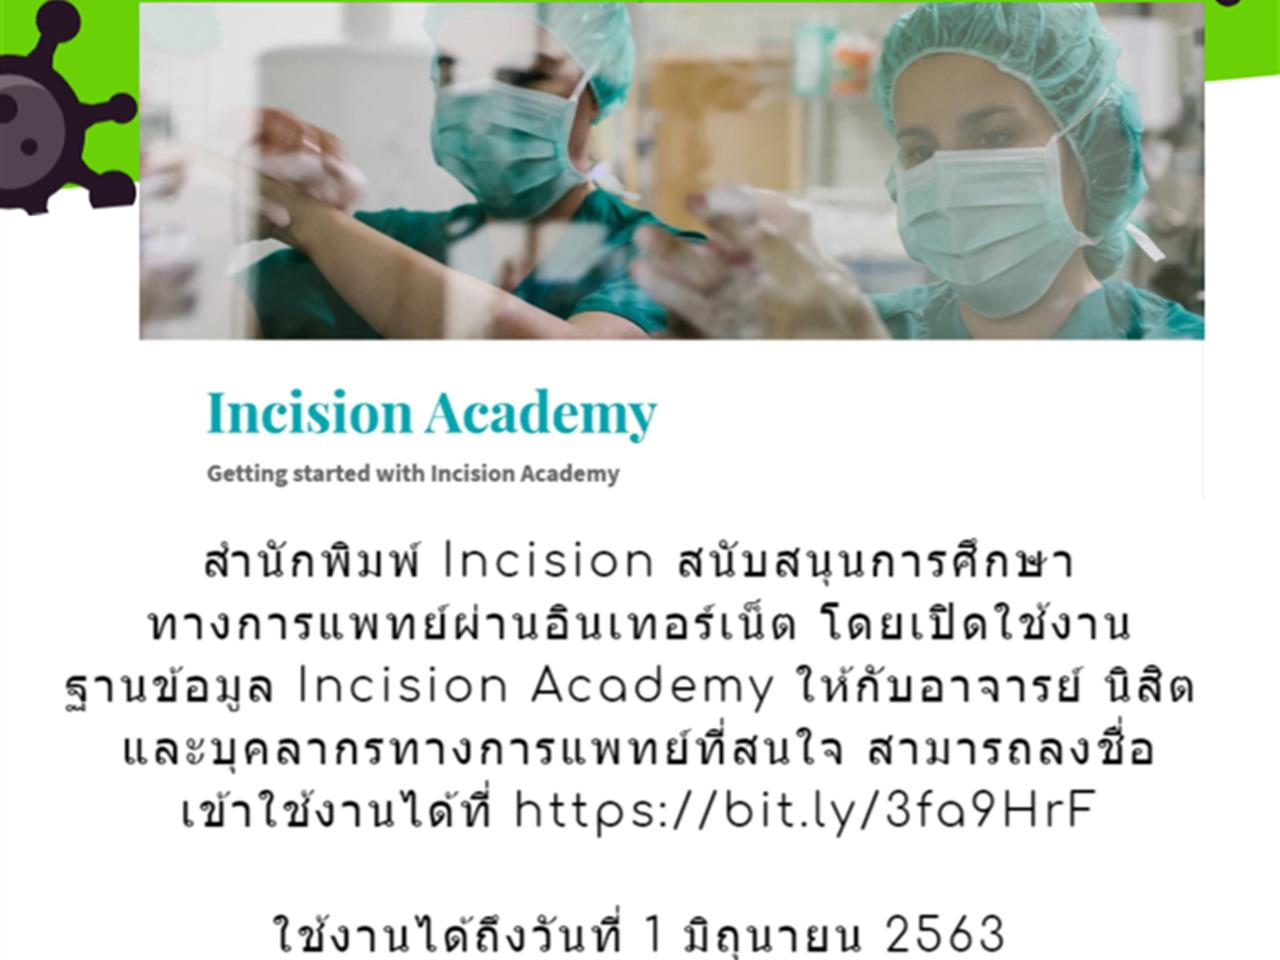 Incision Academy